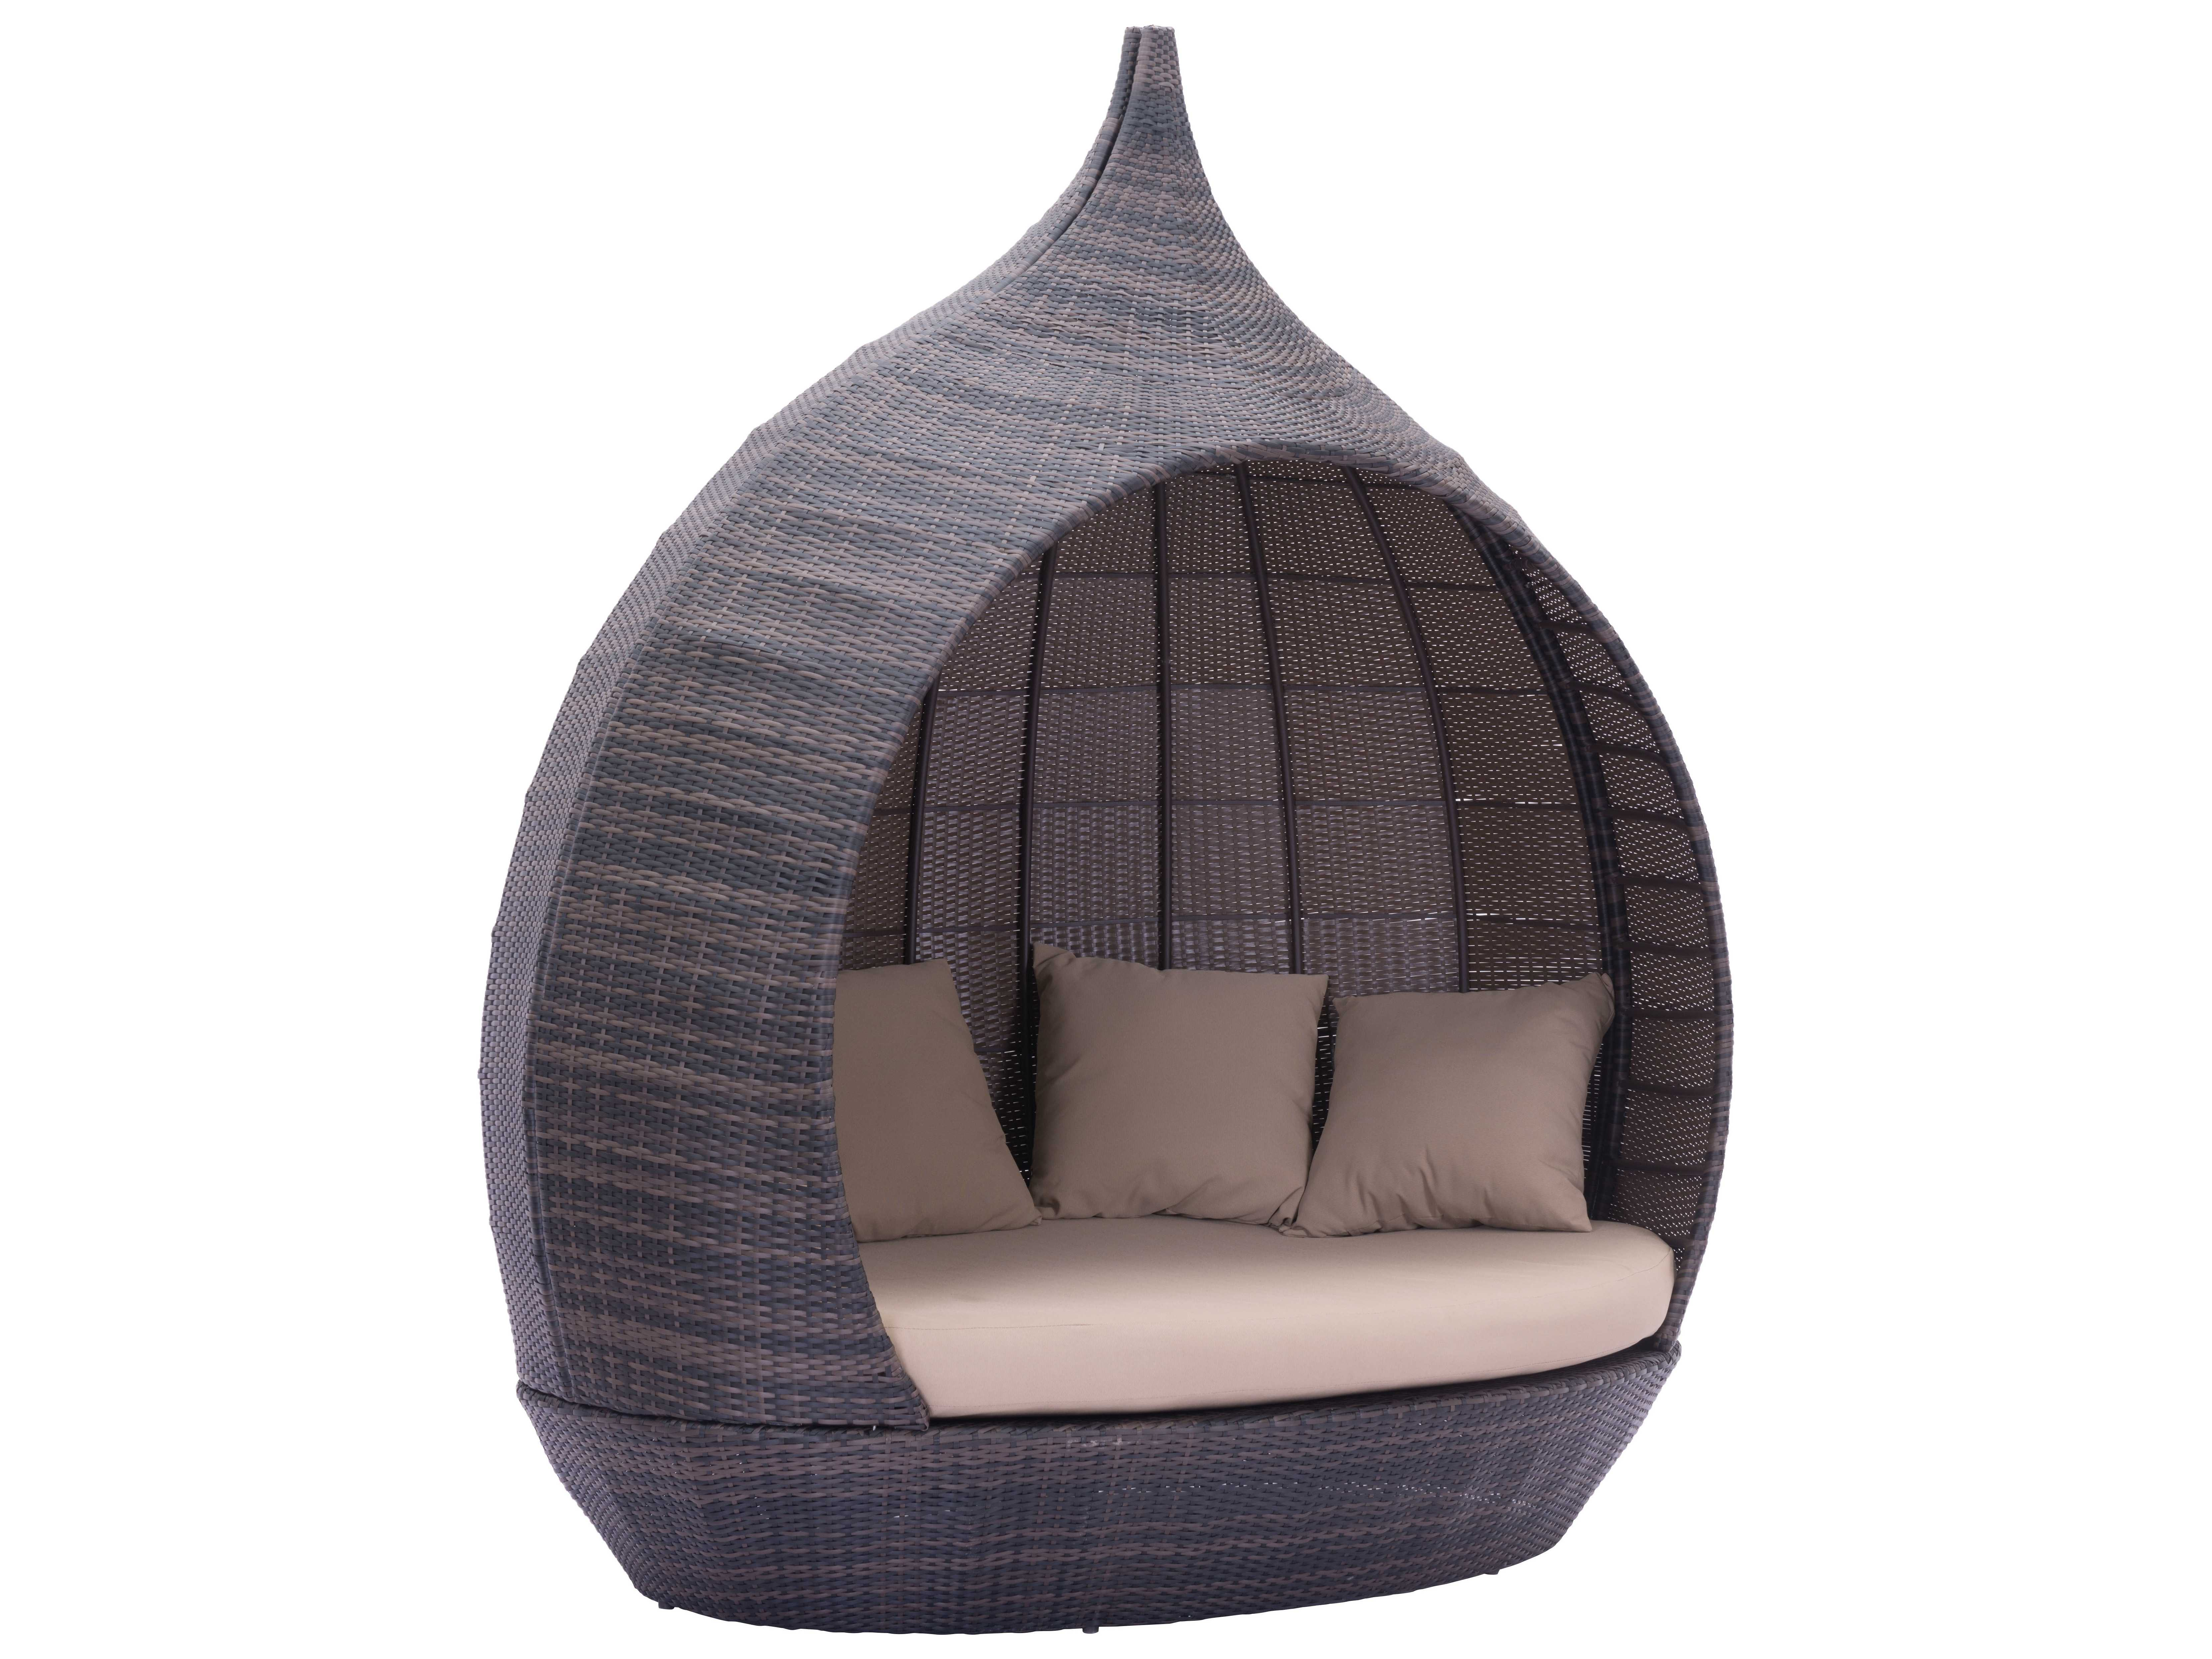 Strange Zuo Outdoor Martinique Beach Aluminum Polyurethane Weave Day Bed In Brown Beige Bralicious Painted Fabric Chair Ideas Braliciousco